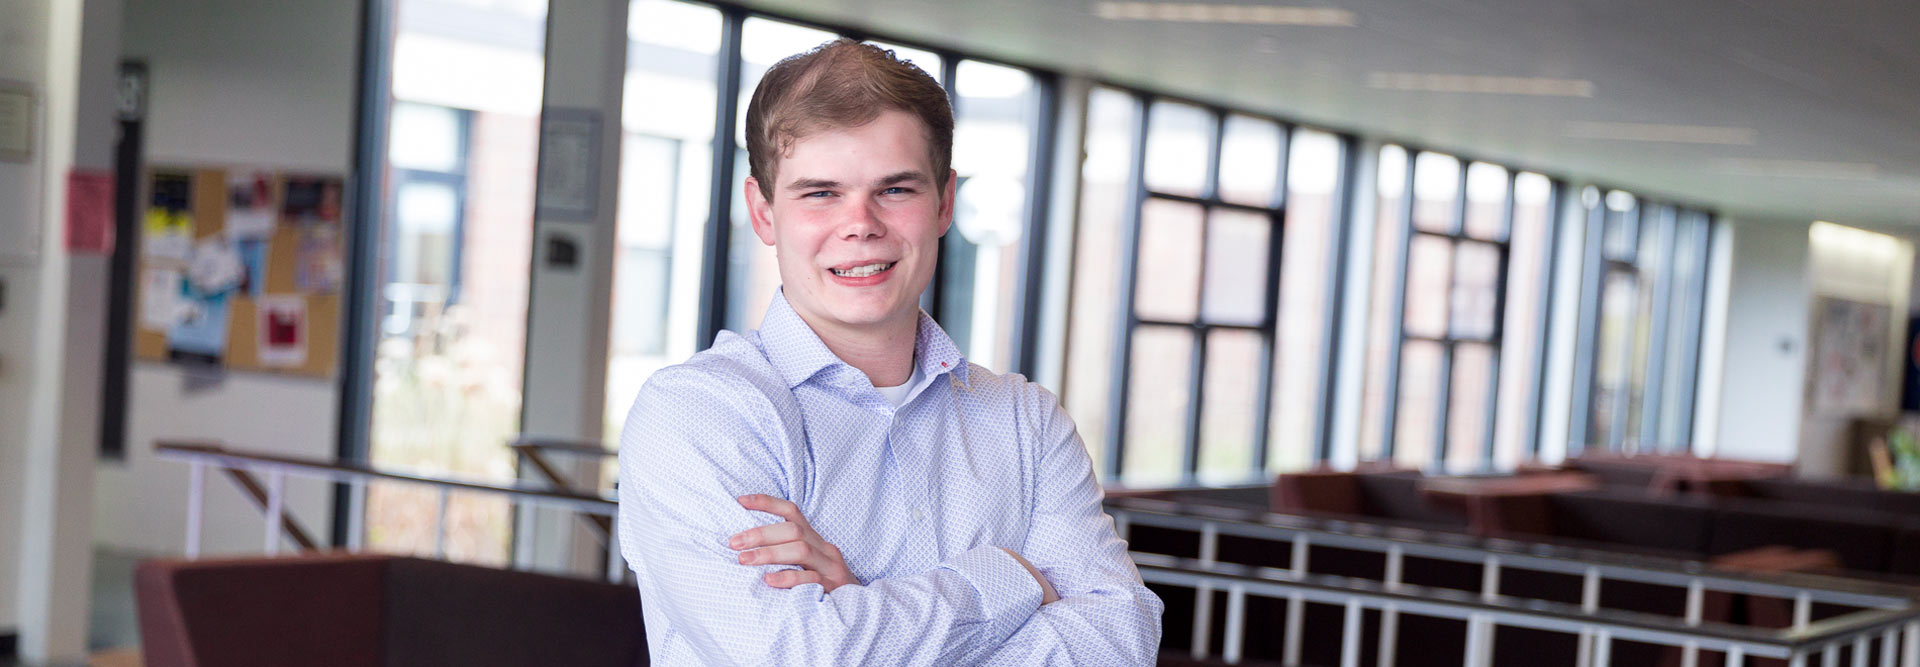 SJU student Kevin Curwick headed to D.C. to engage in public policy and health advocacy